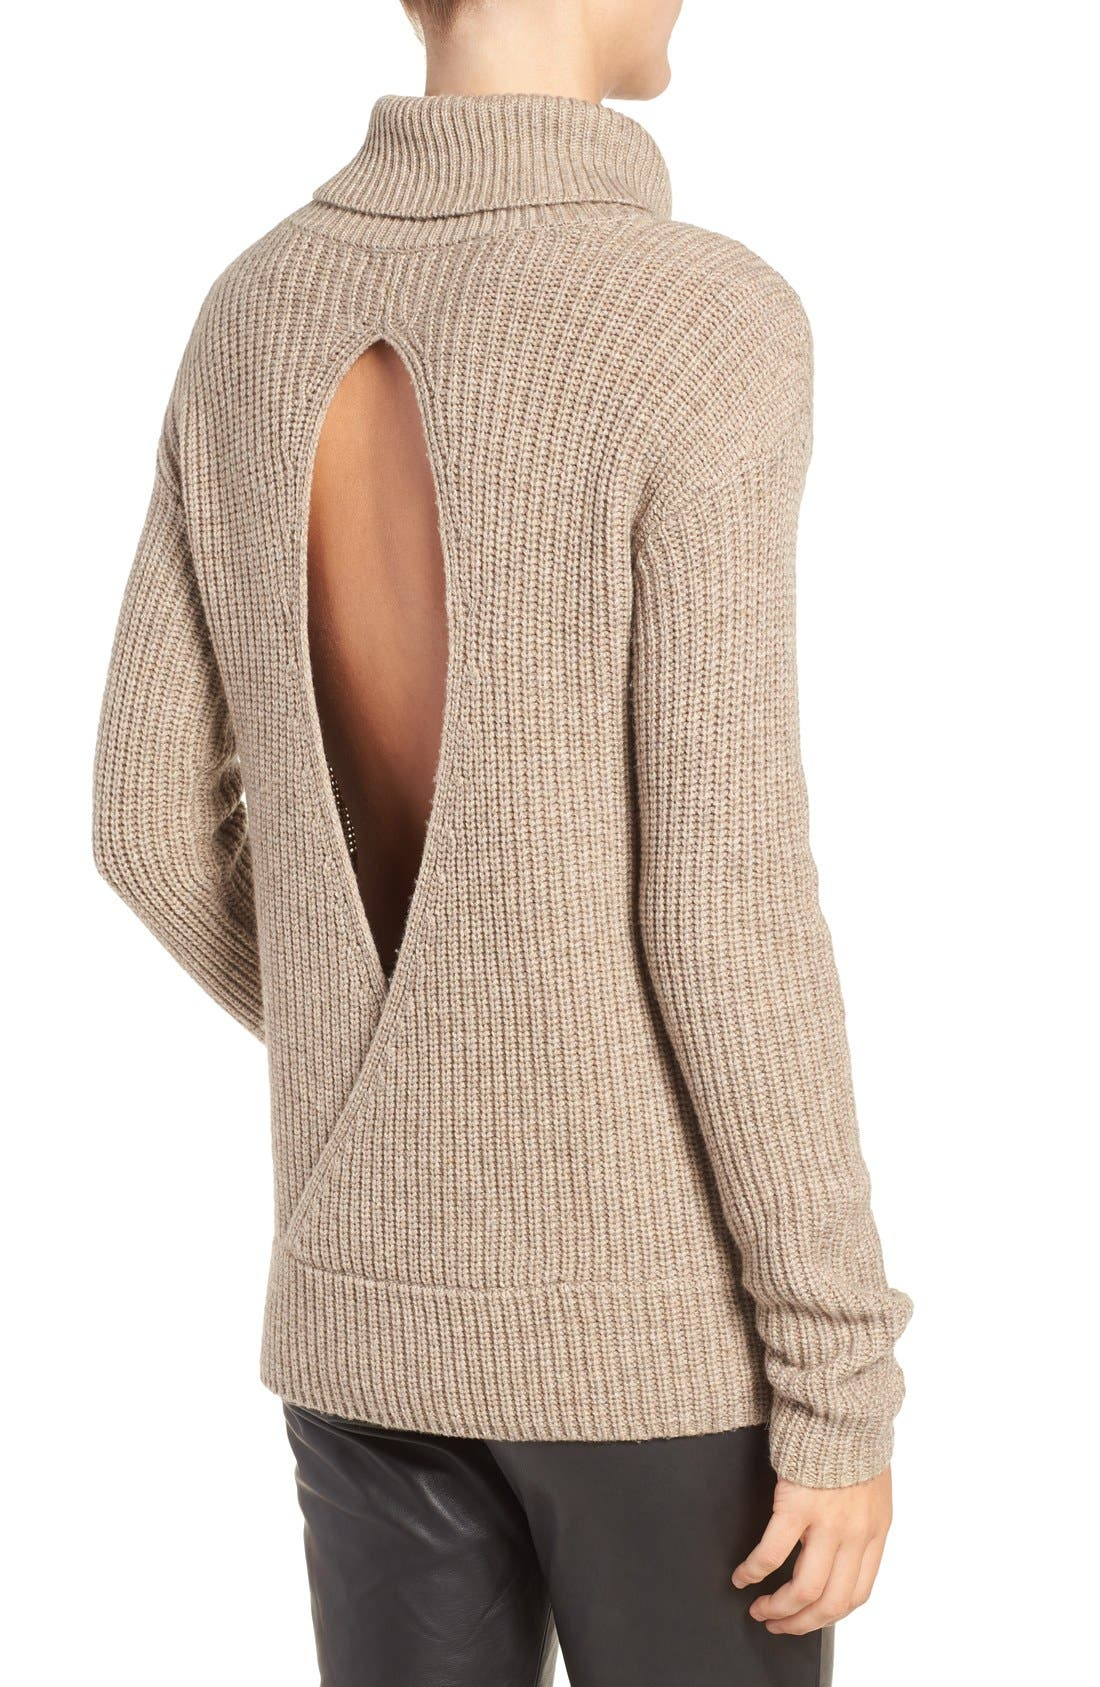 OLIVIA PALERMO + CHELSEA28, Open Back Wool & Cashmere Turtleneck Sweater, Main thumbnail 1, color, 235